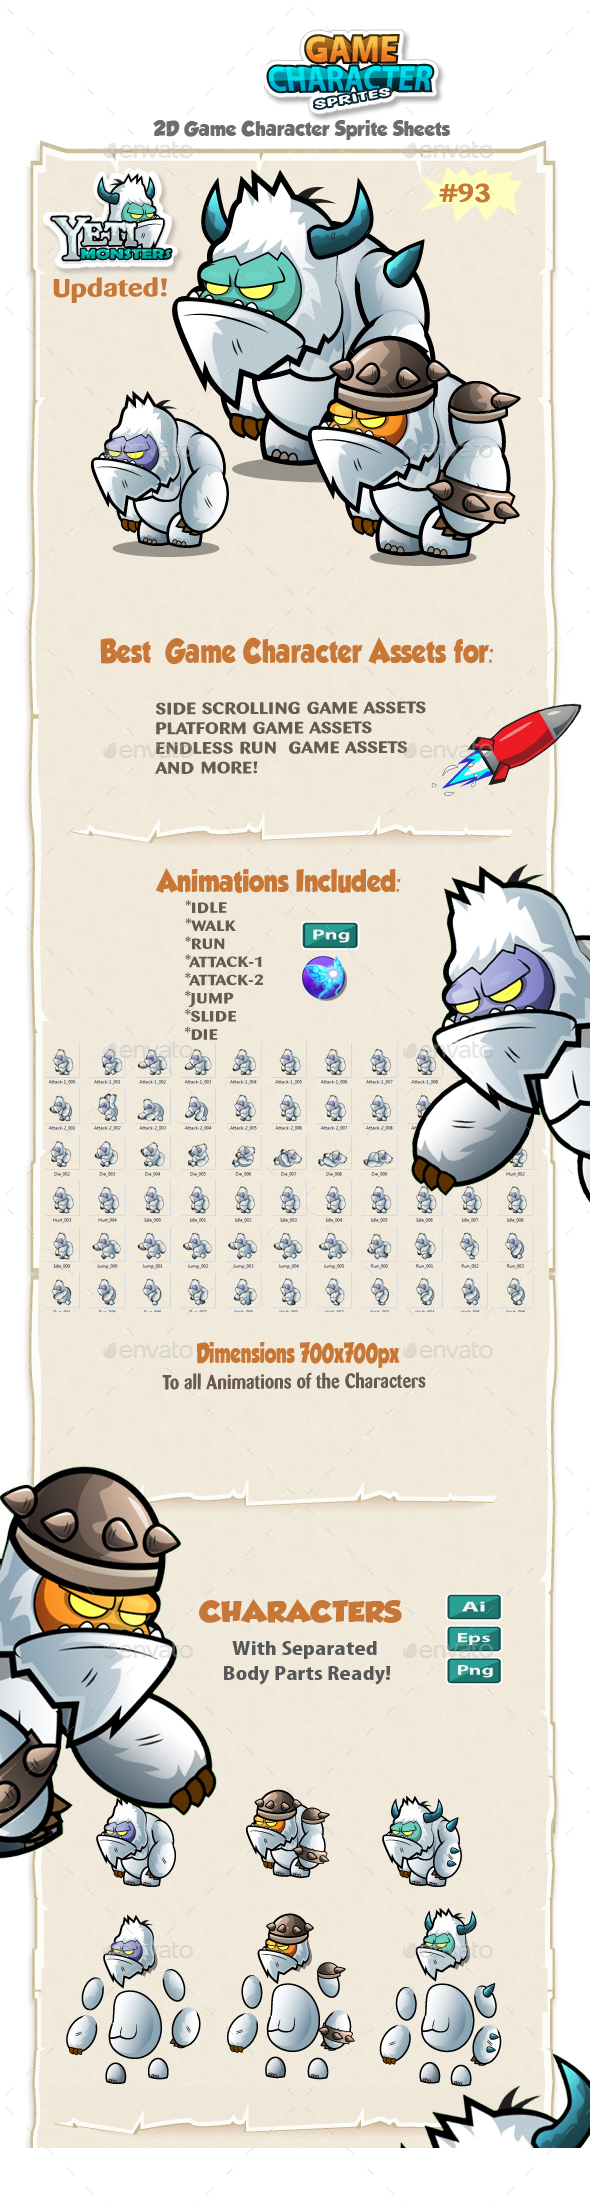 Yeti 2D Game Character Sprites 93 - Sprites Game Assets